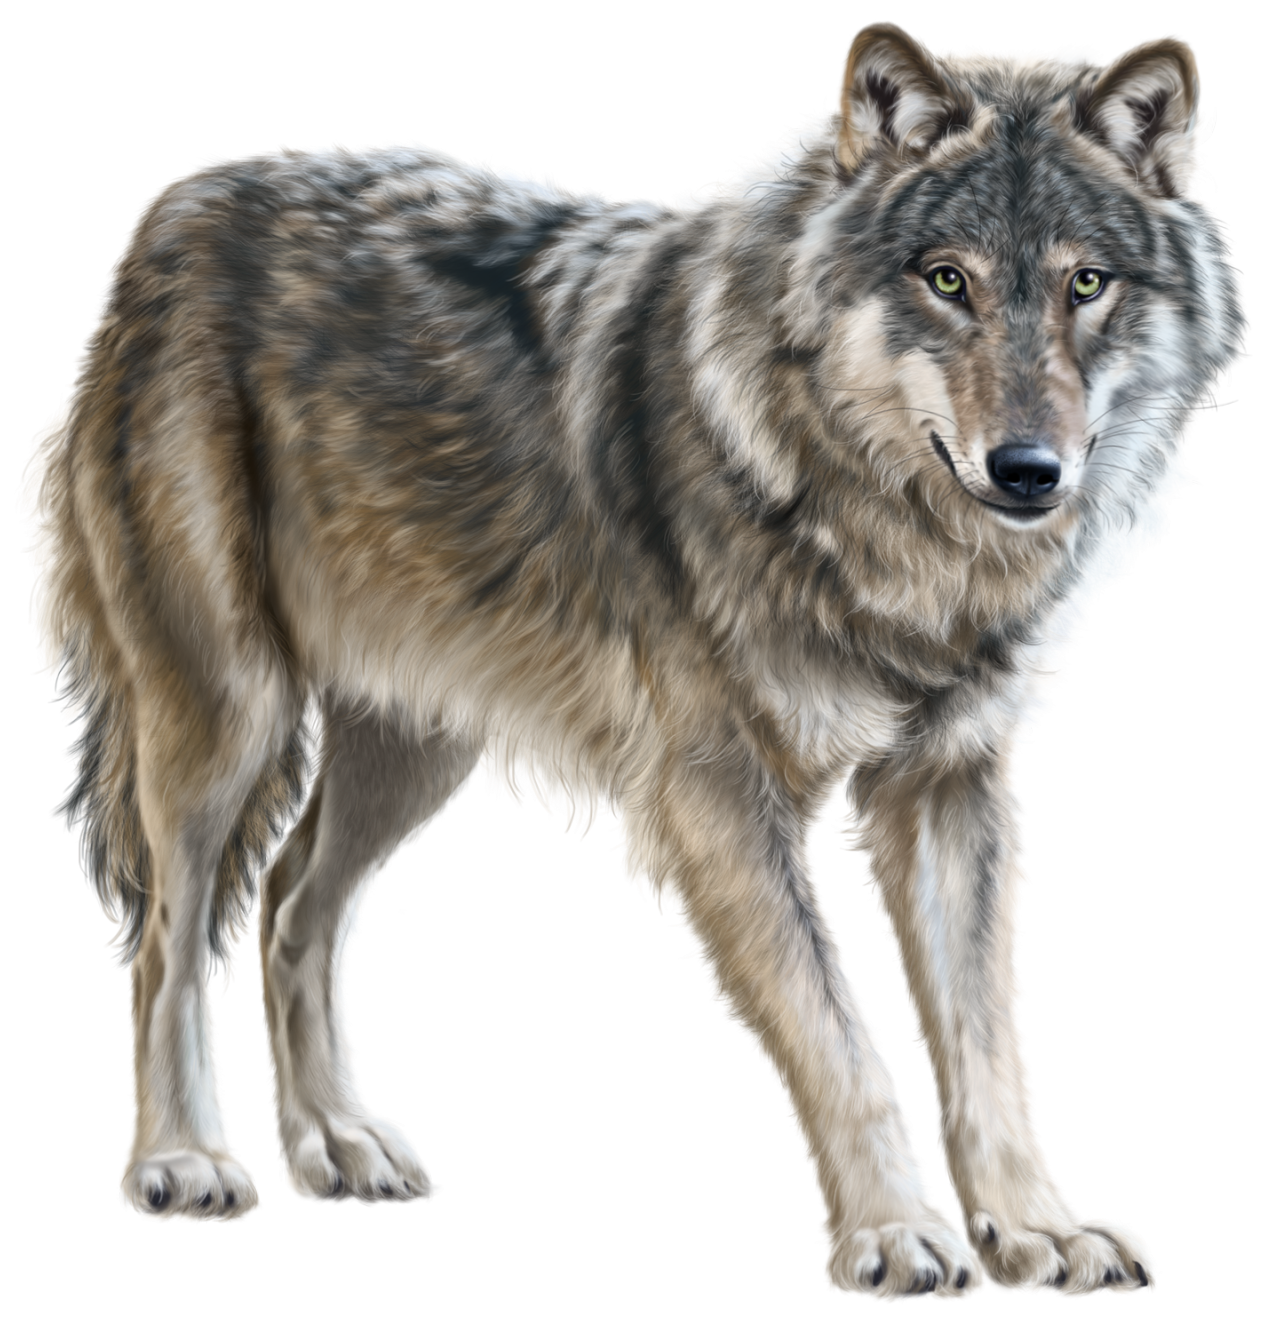 Wolf images clipart image transparent Wolf PNG Clip Art - Best WEB Clipart image transparent